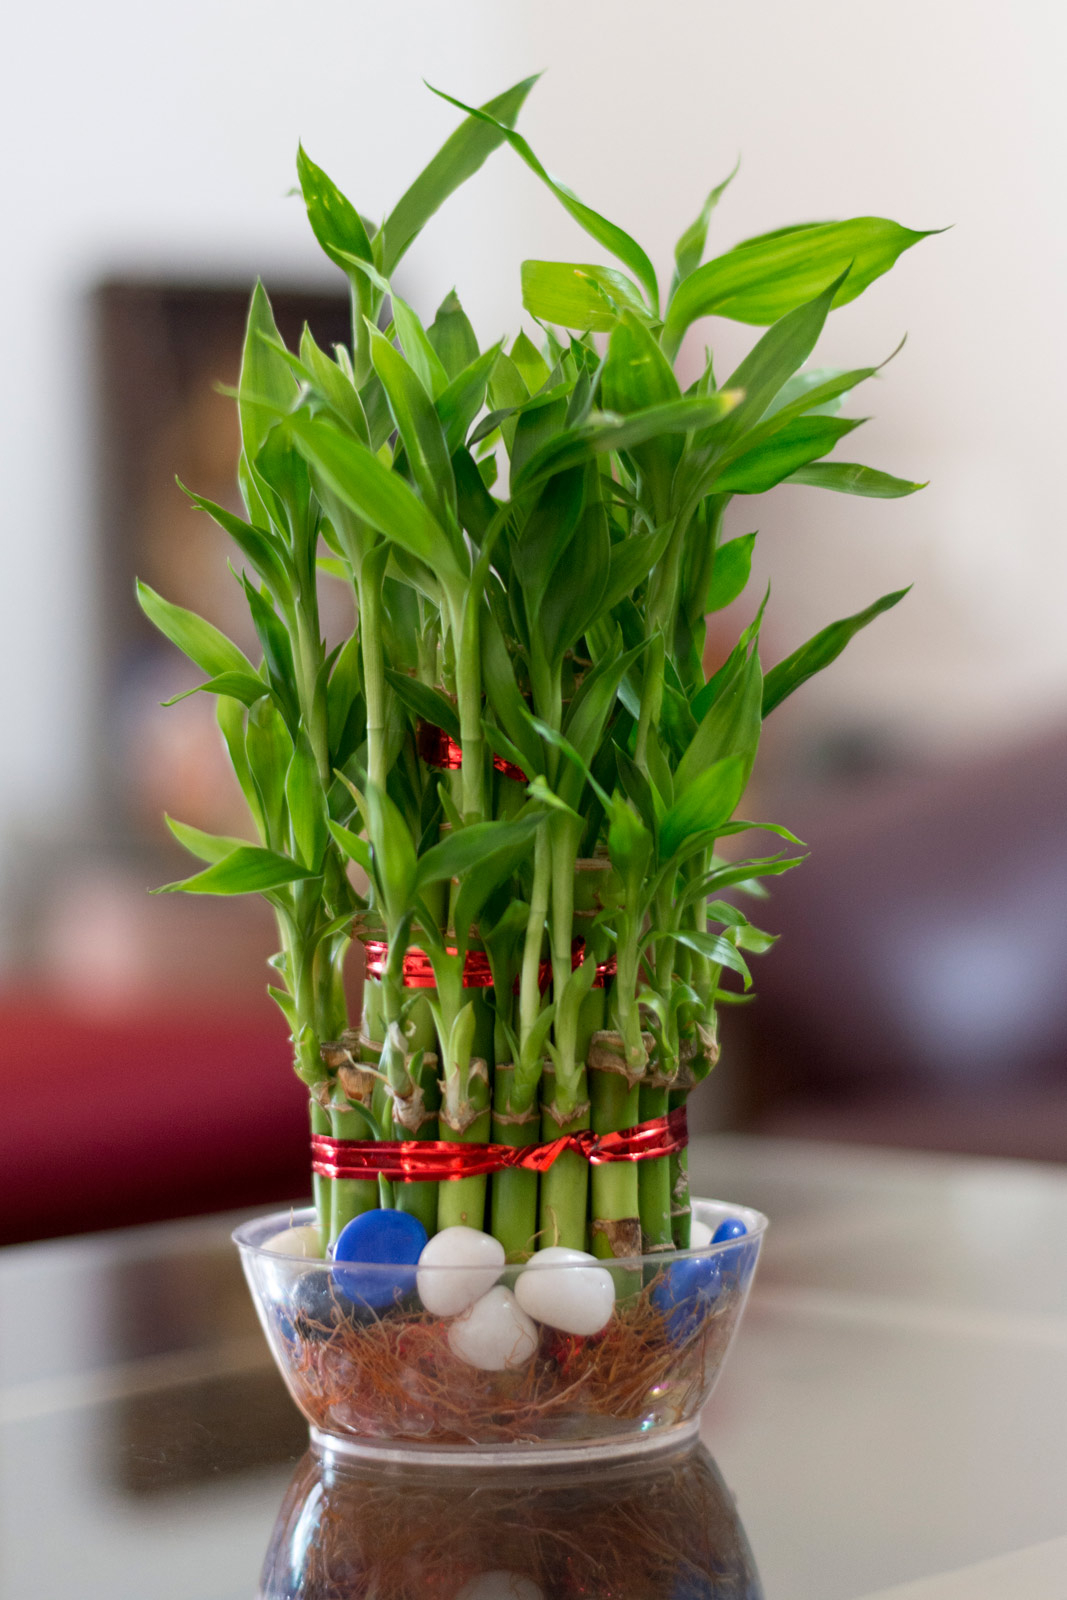 While not actually bamboo this dracaena is sure to bring luck to your dorm. Simplistic and easy to grow in low-light conditions having a lucky bamboo is a ... & Top 8 Plants To Brighten Your Dorm